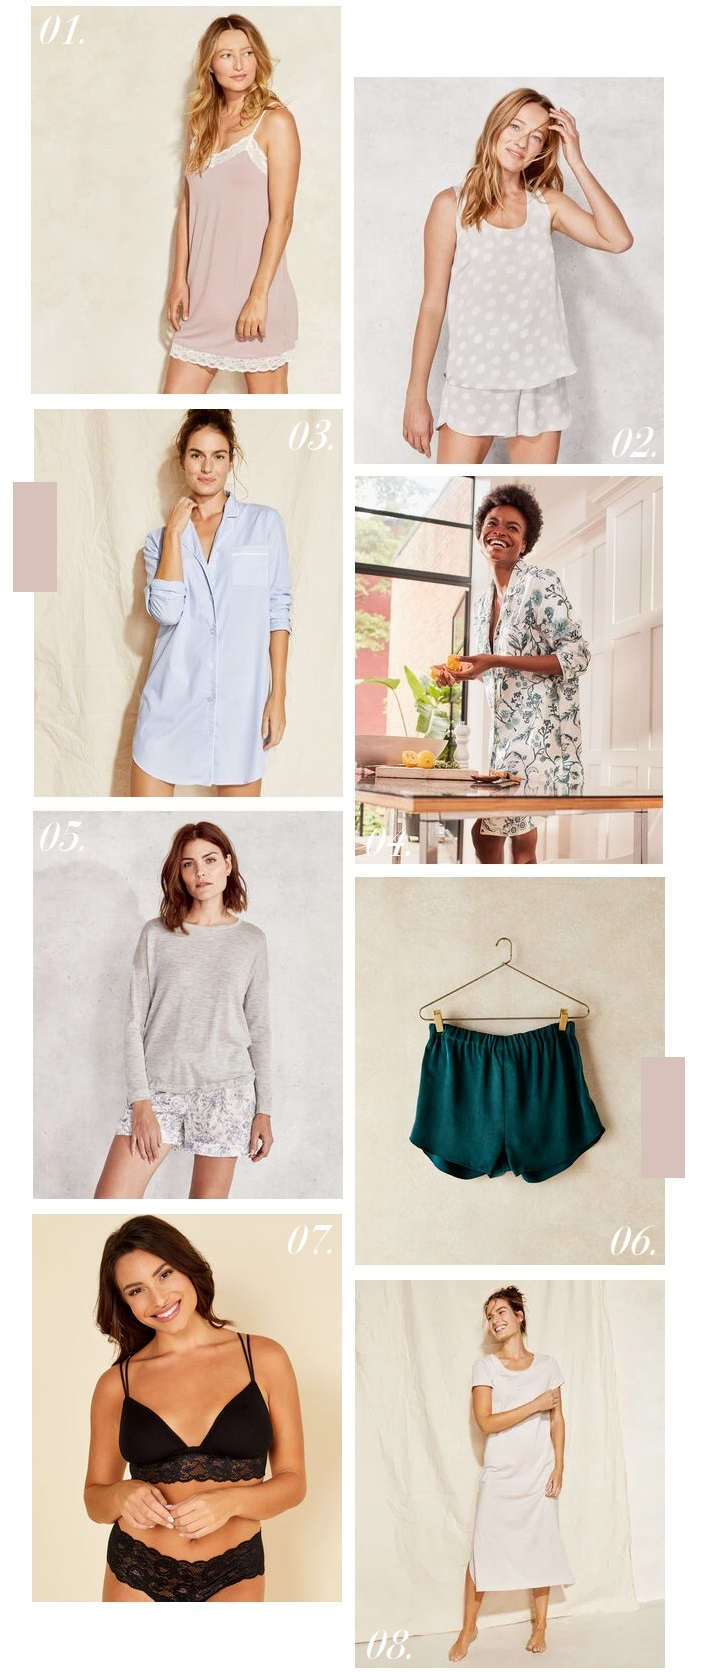 Suzetteroberts - fashion - 01 2021 - work from home wear